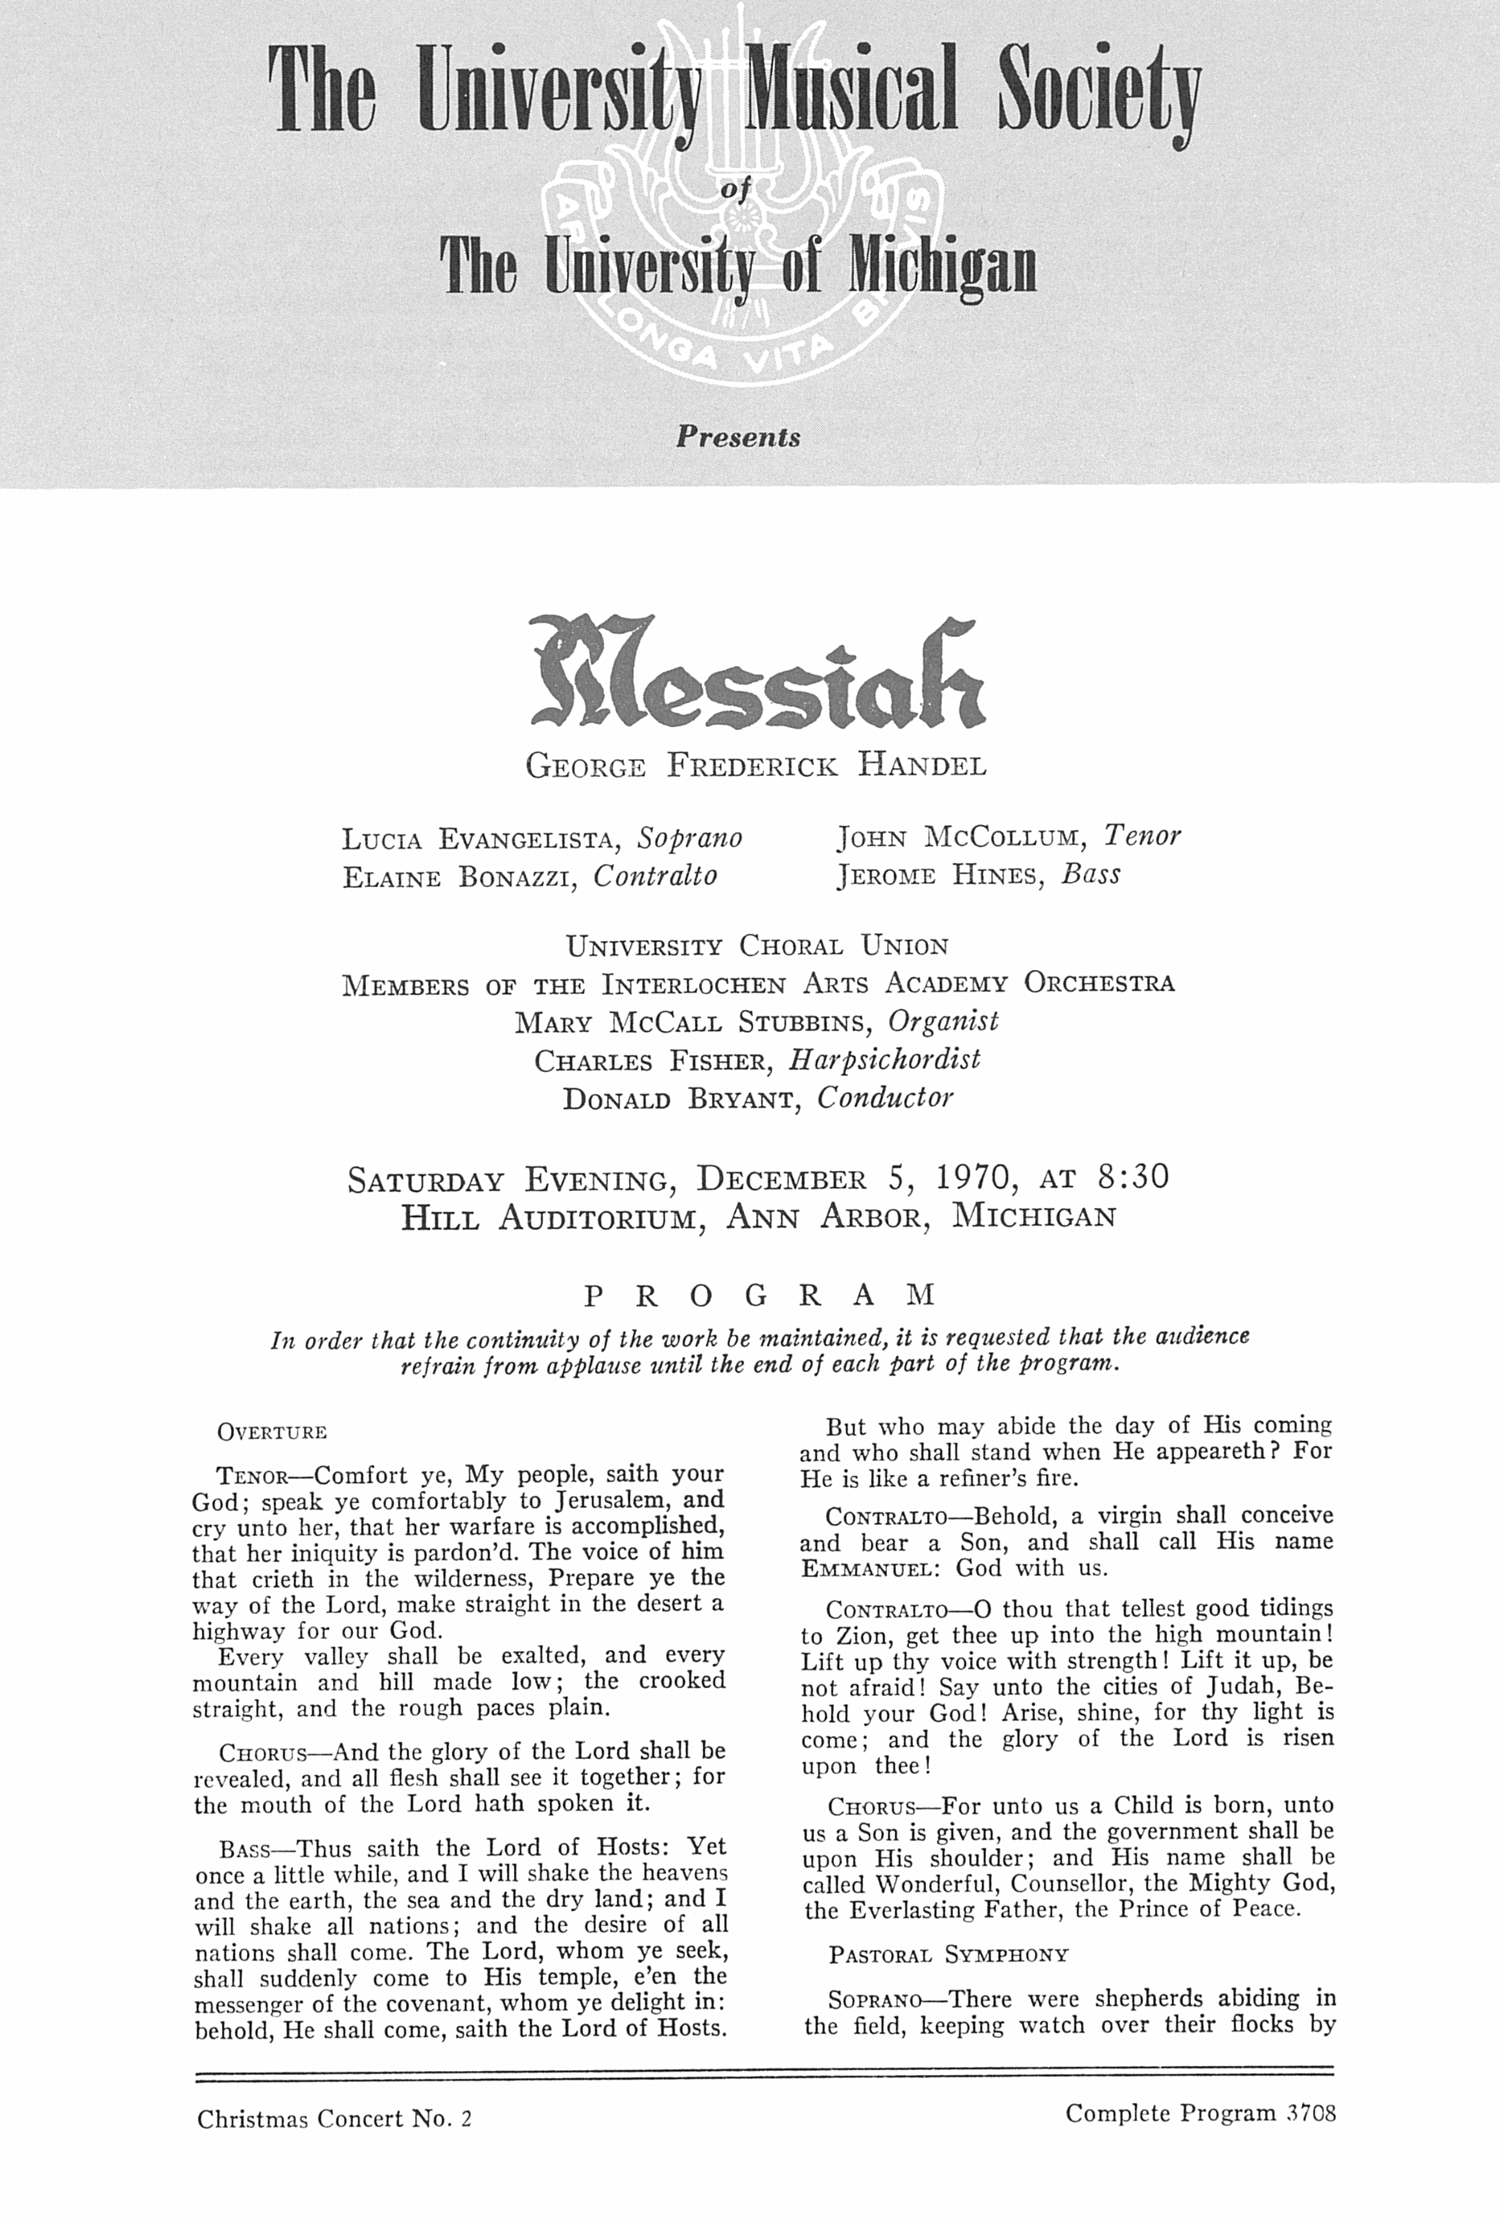 UMS Concert Program, December 5, 1970: Messiah -- George Frederick Handel image